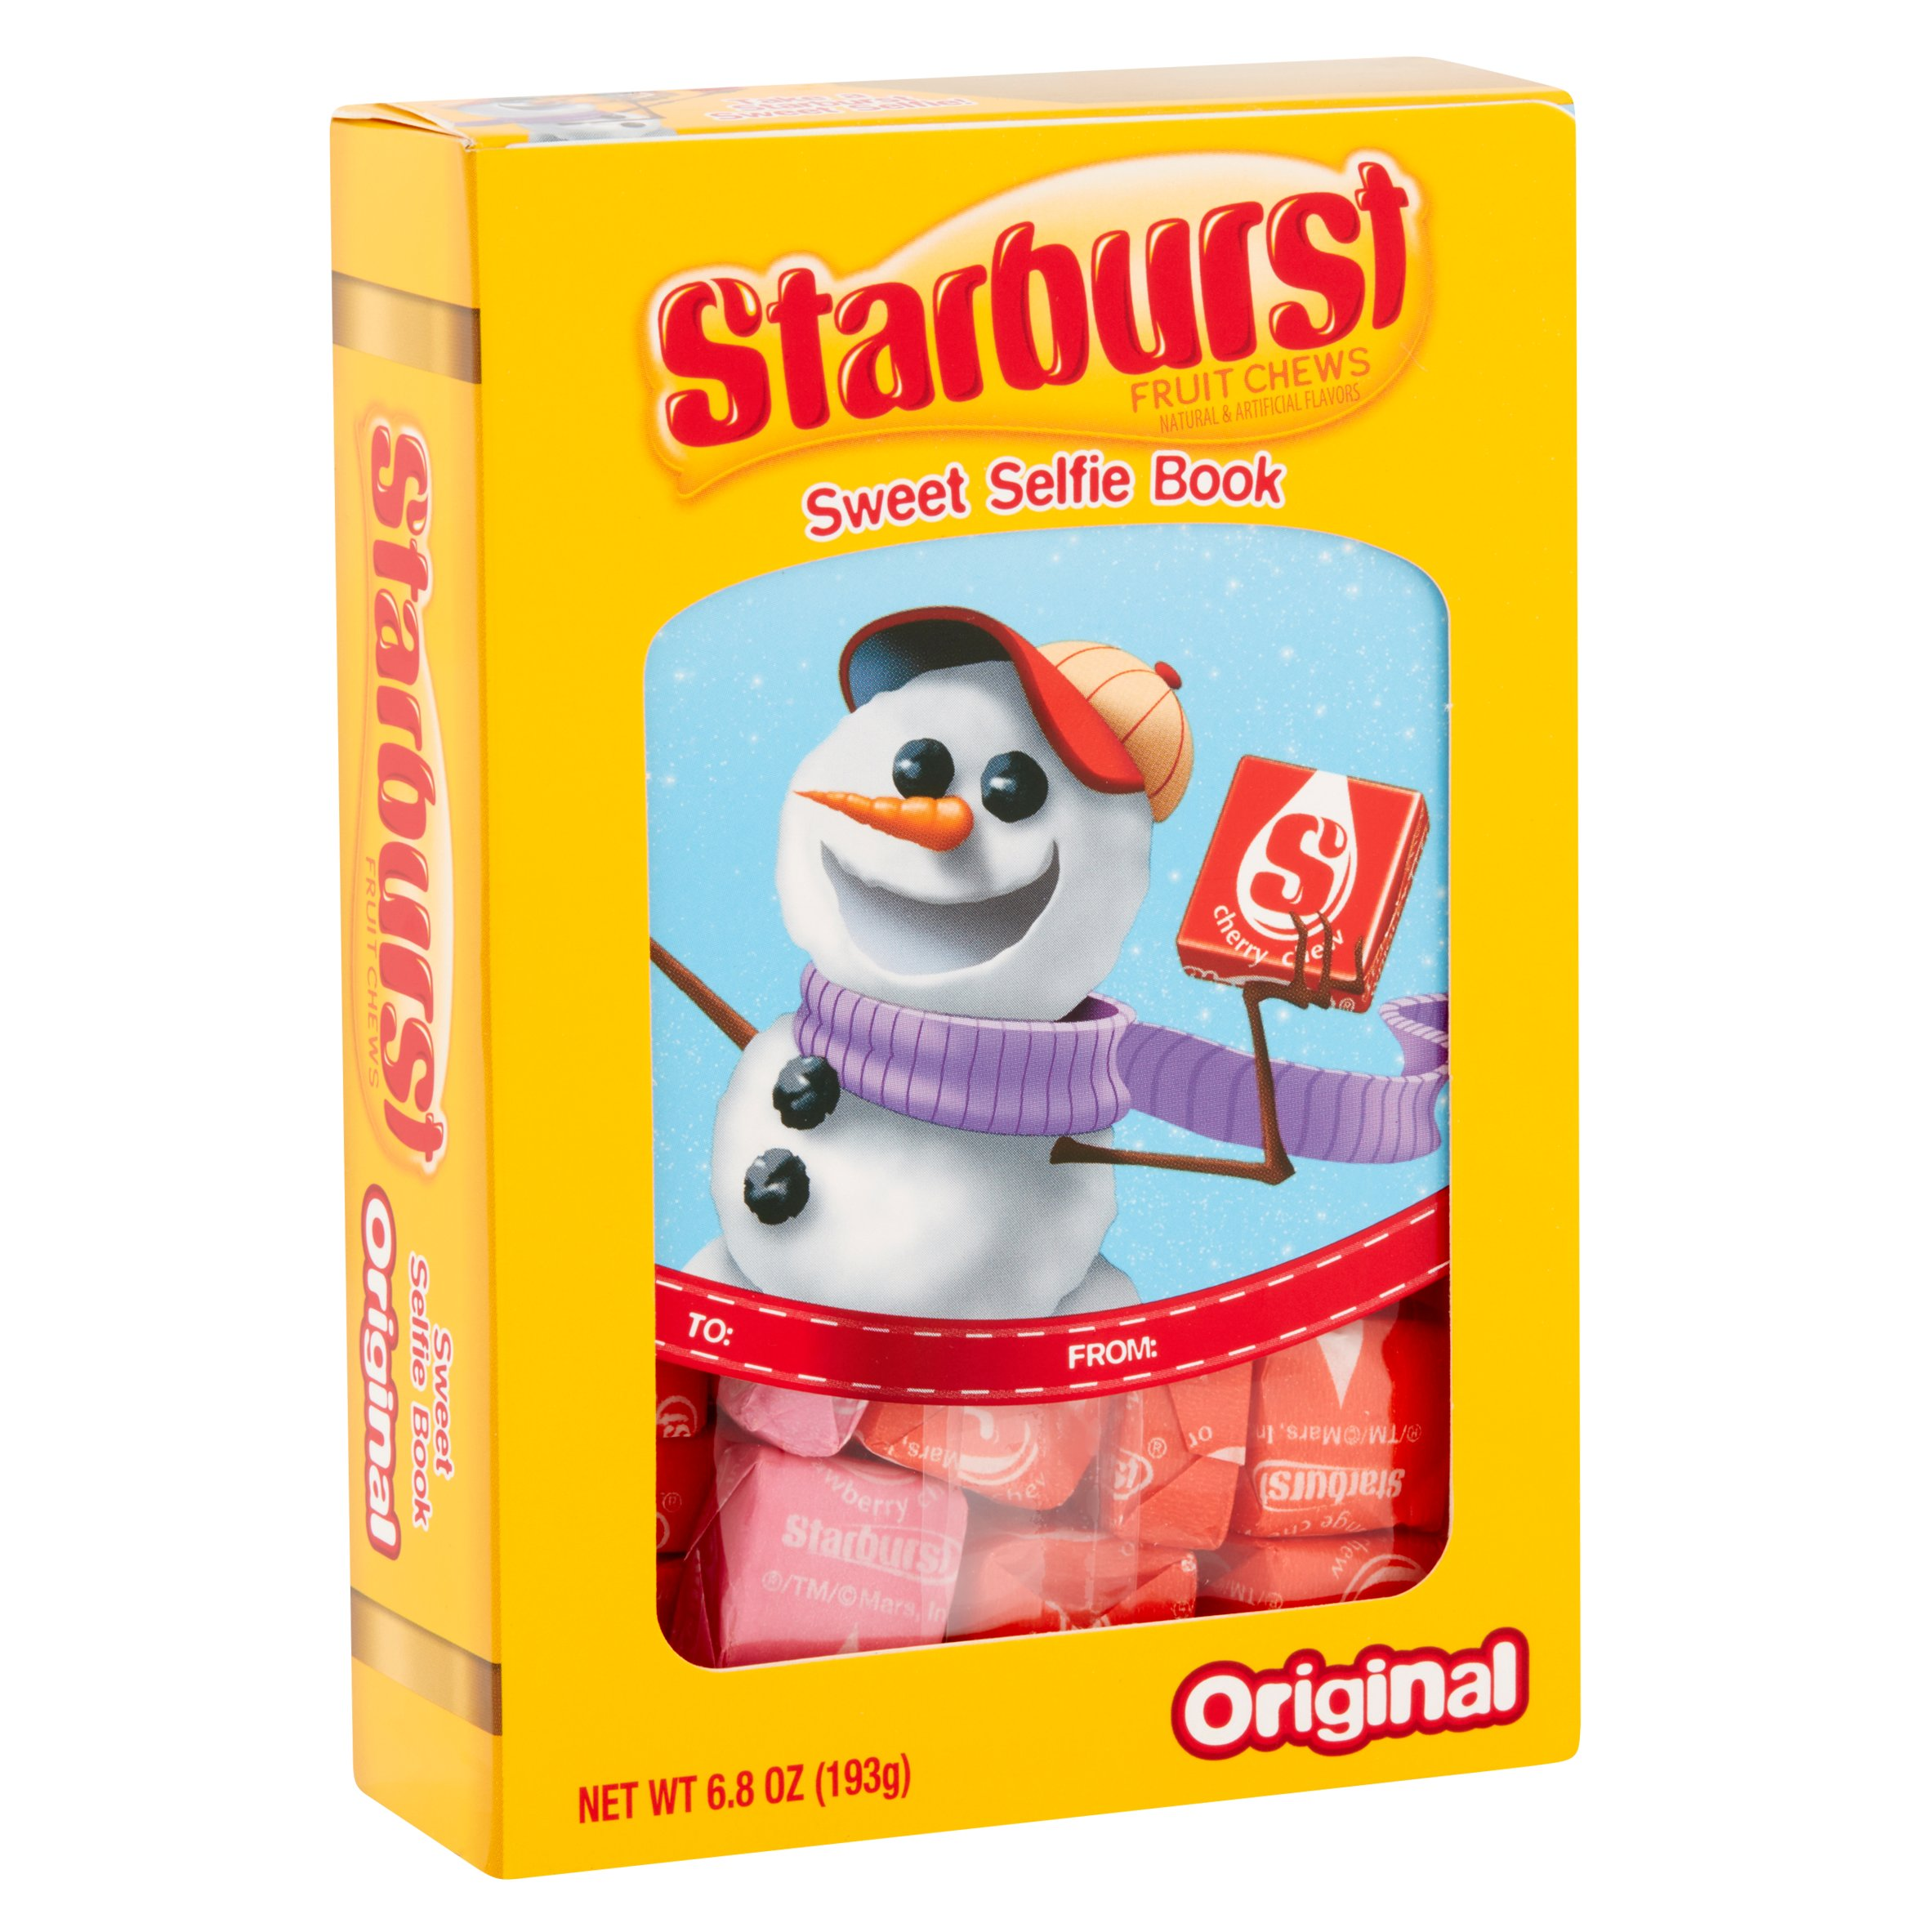 Starburst Sweet Selfie Book Original Fruit Chews, 6.8 oz